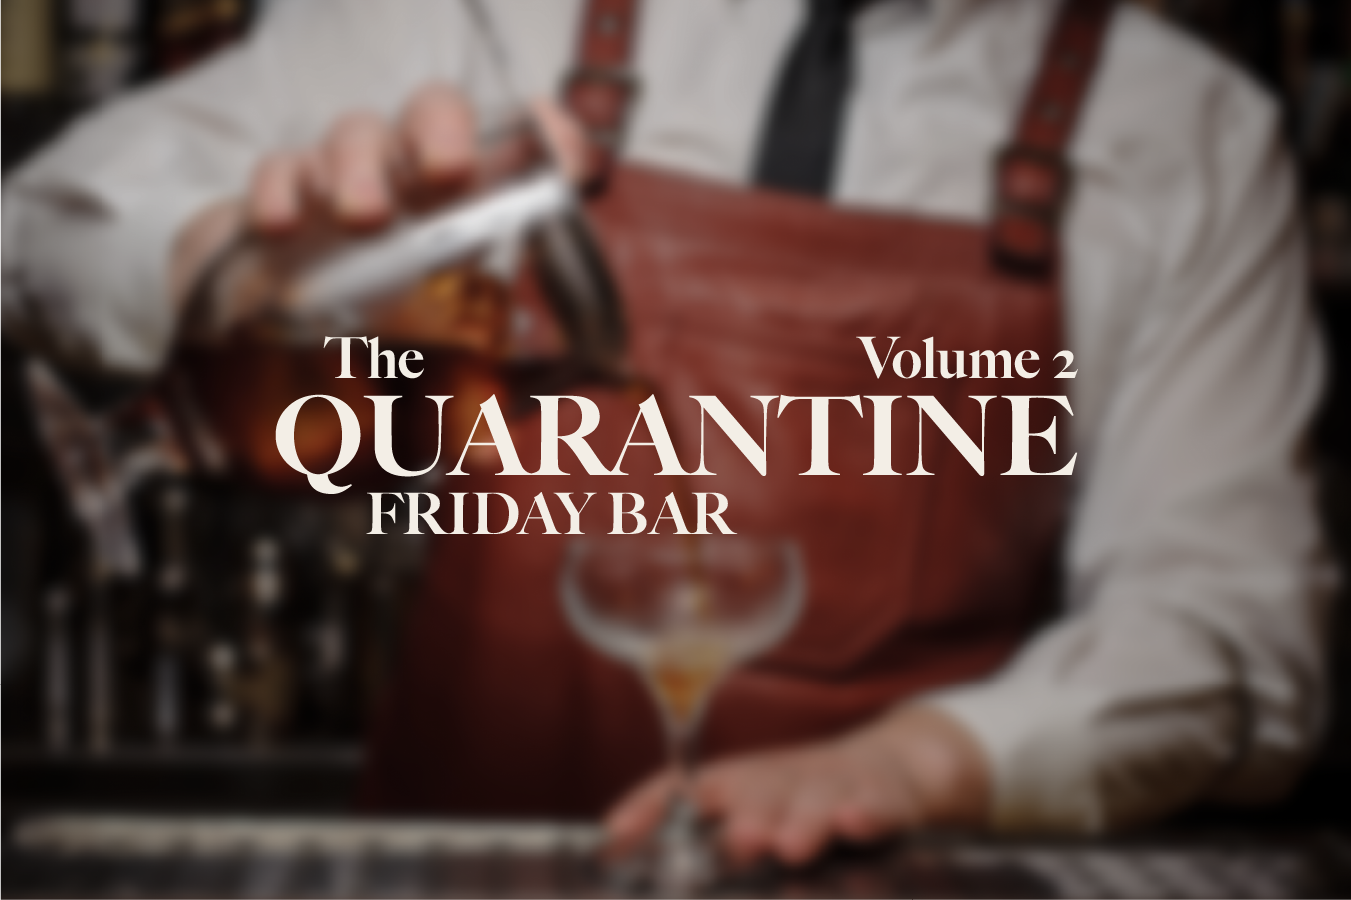 Quarantine Friday Bar Vol. 2 - 5 New Cocktails For The Virtual Hangout